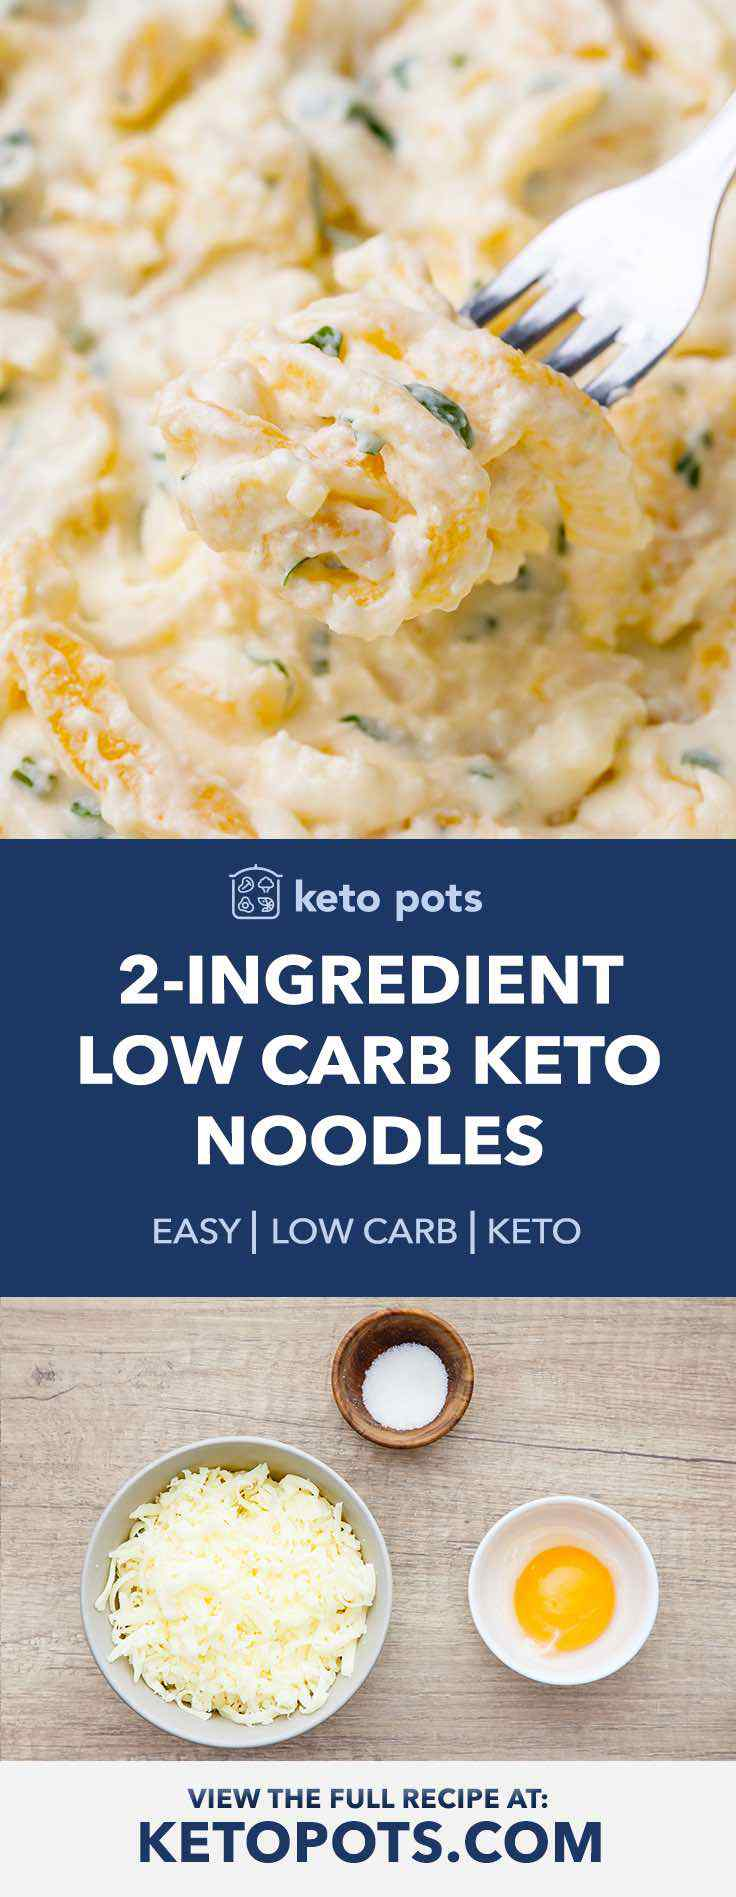 These are the BEST homemade 2-ingredient keto noodles.